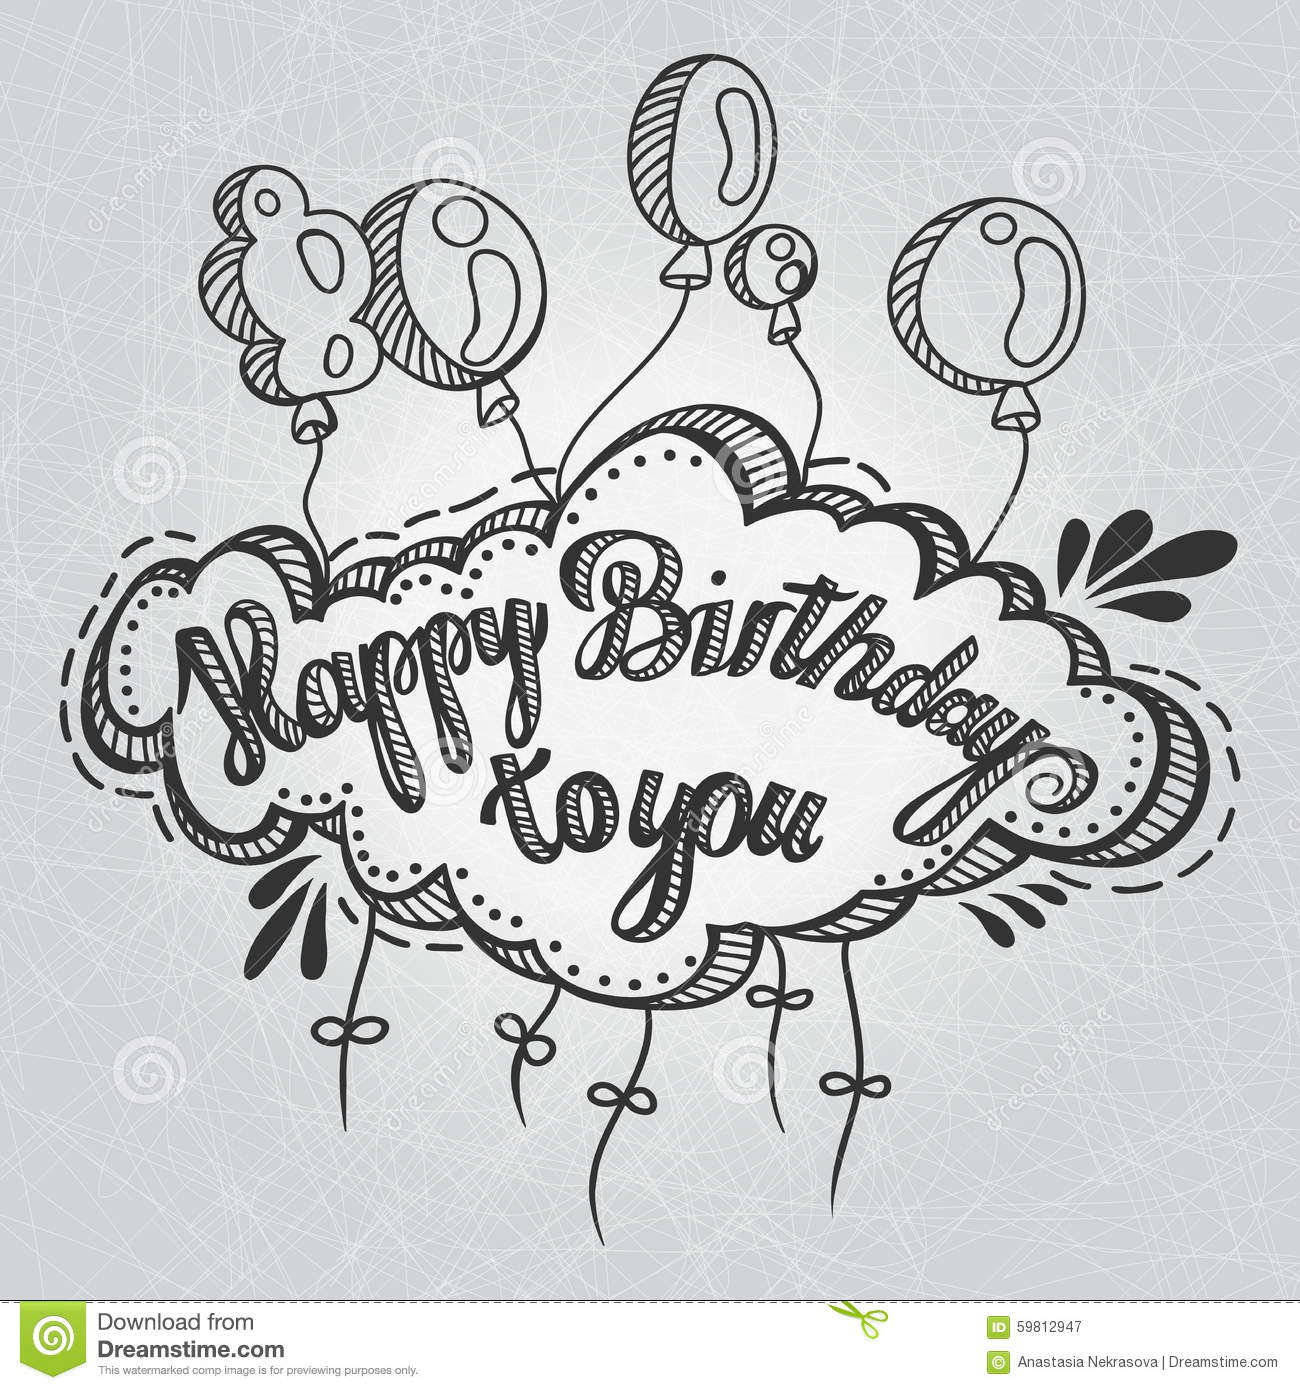 happy birthday pencil drawing ; happy-birthday-drawing-in-pencil-drawn-balloon-happy-birthday-pencil-and-in-color-drawn-balloon